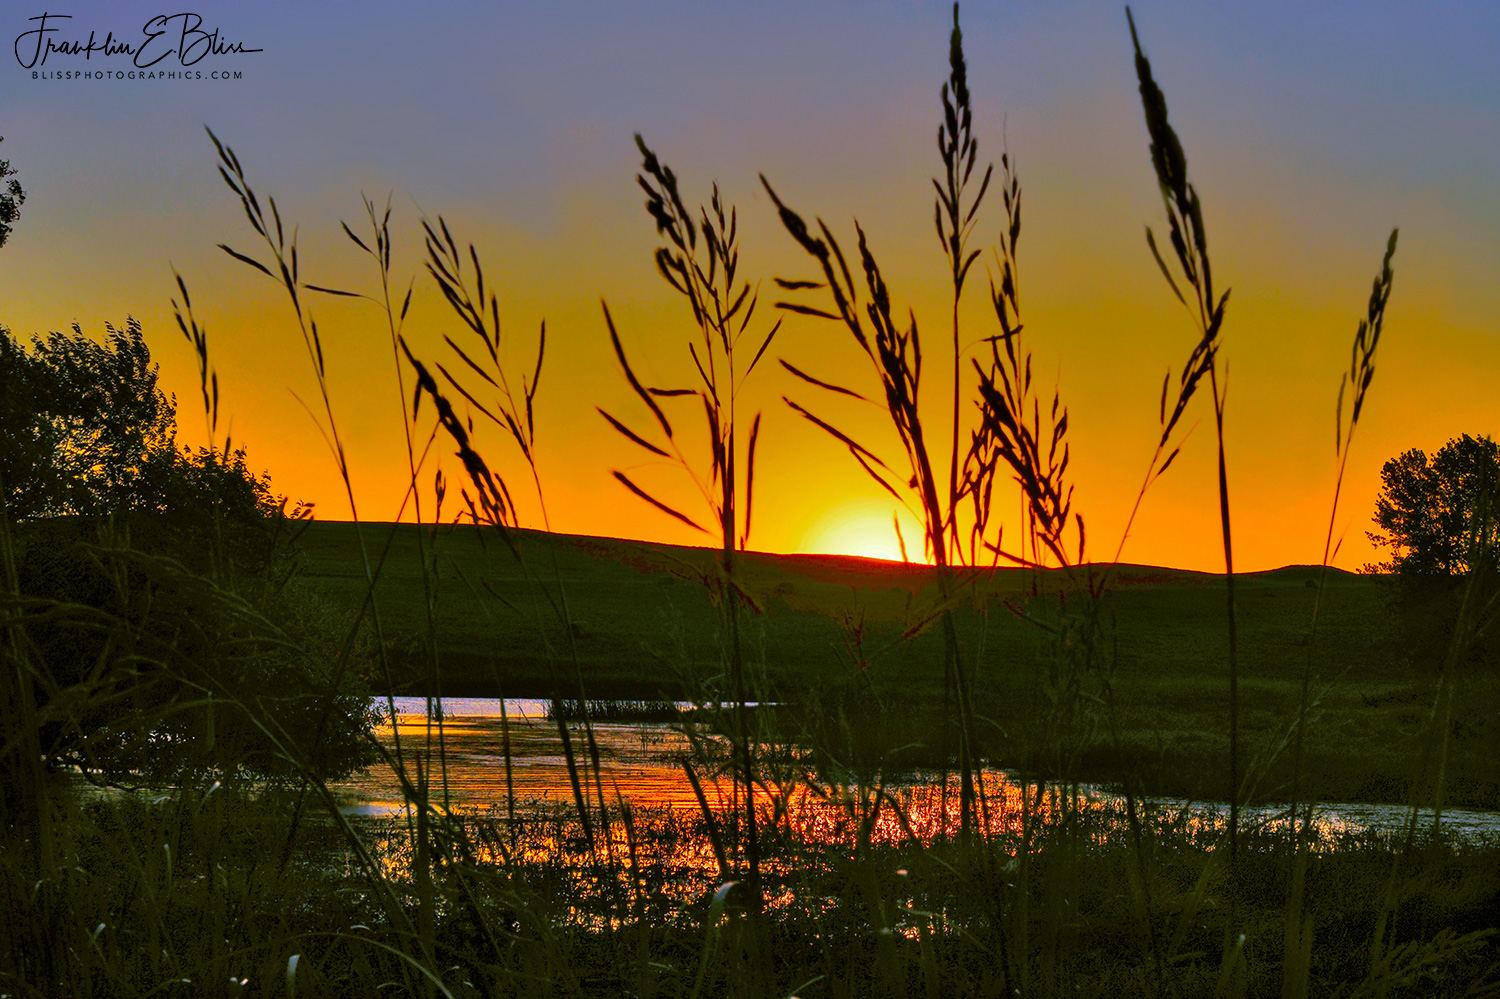 Clear Sky Sunrise from the Borderland Wetlands